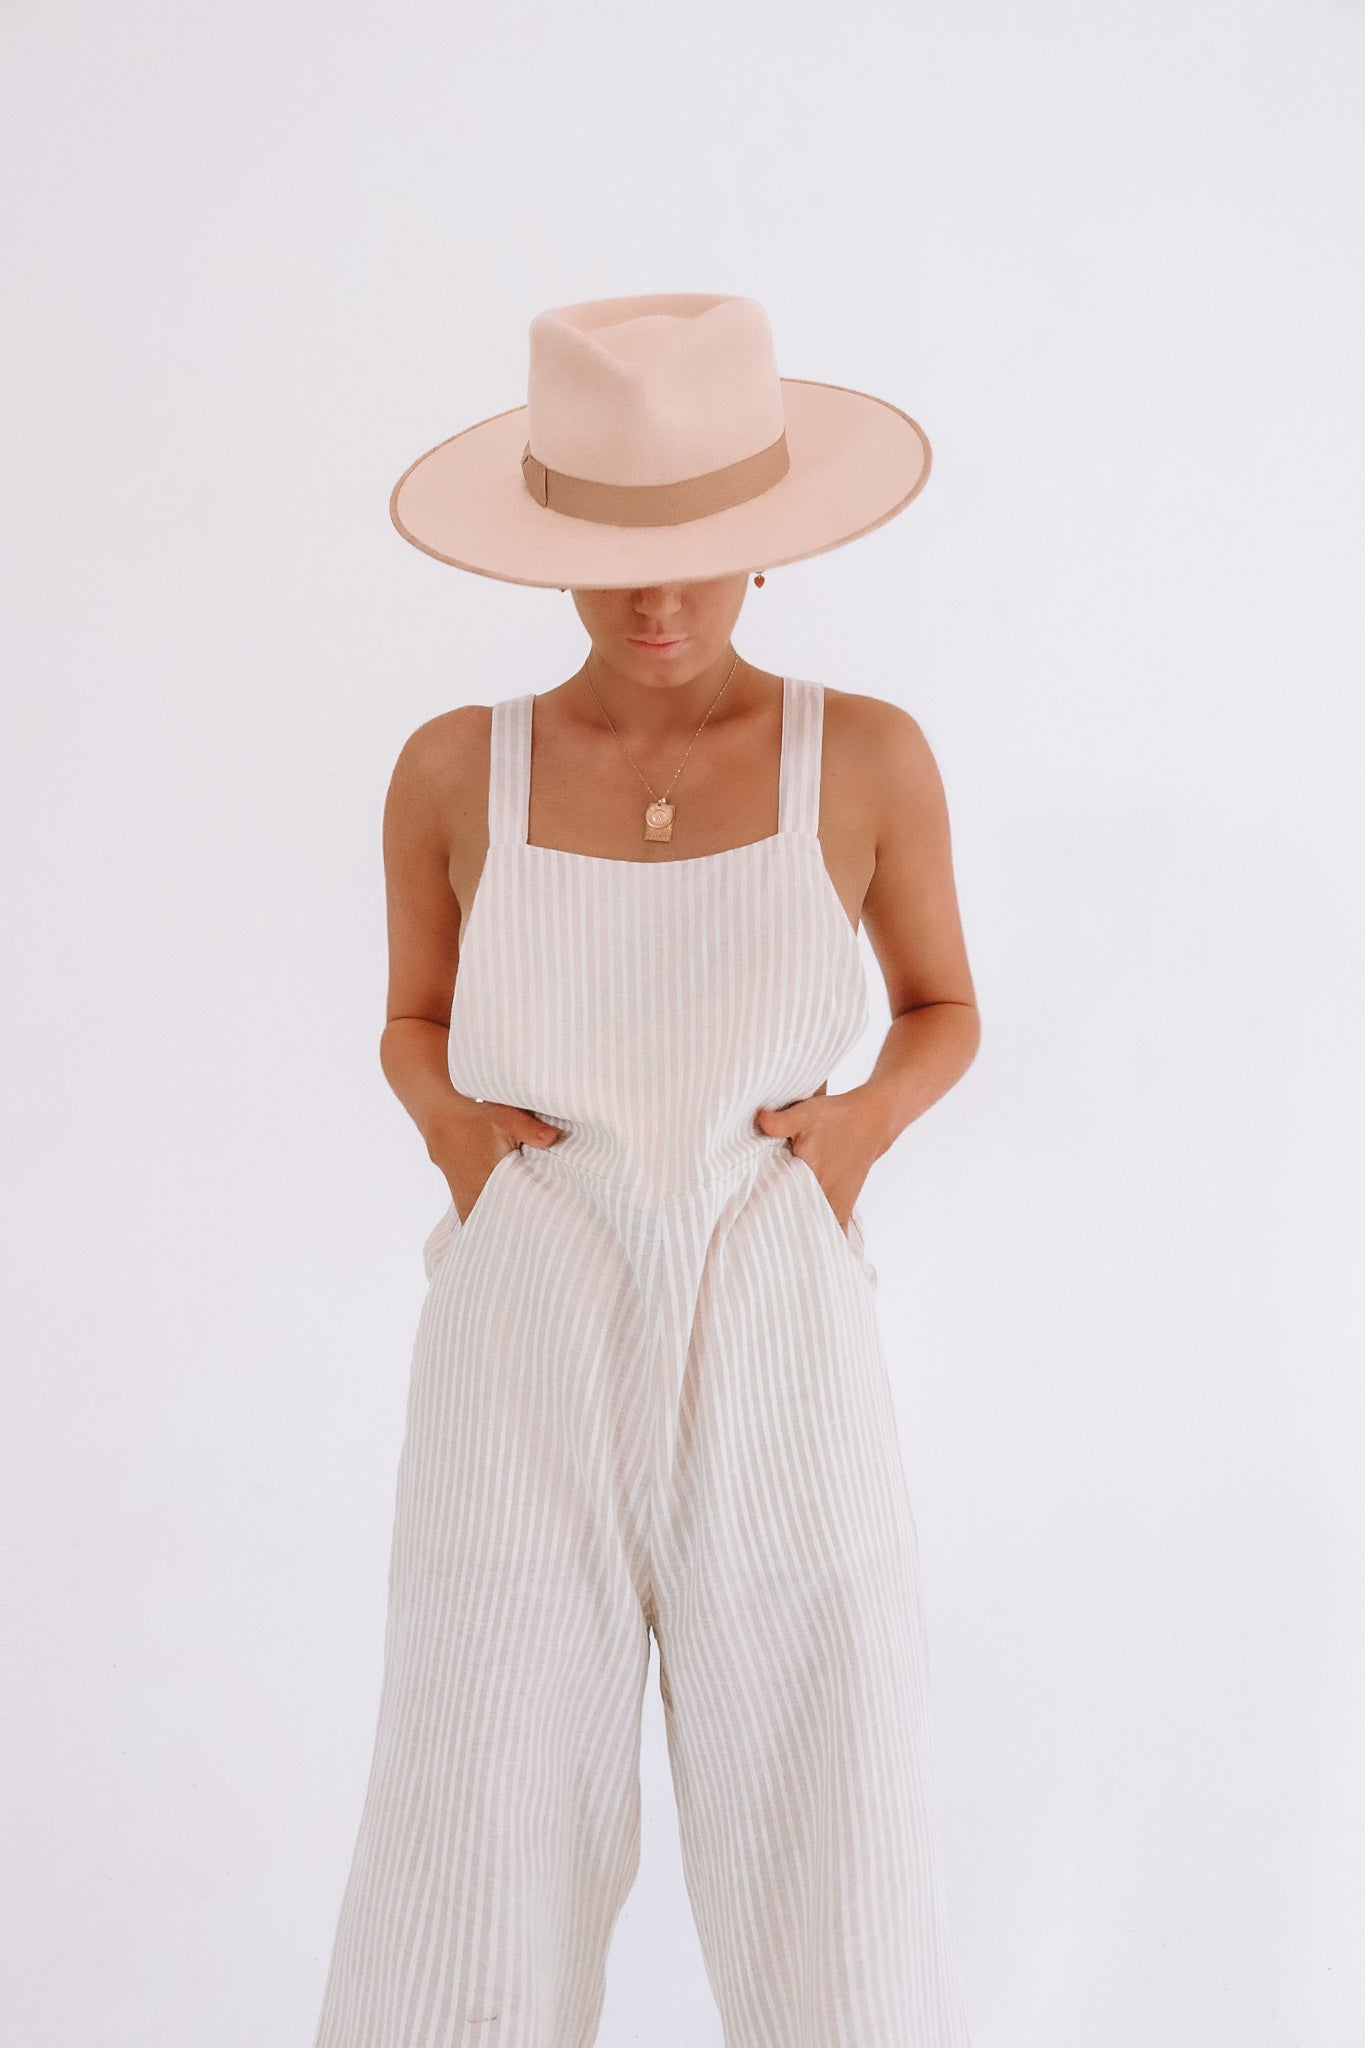 The Ventura Cotton Hemp Overalls in Natural Sailor Stripe